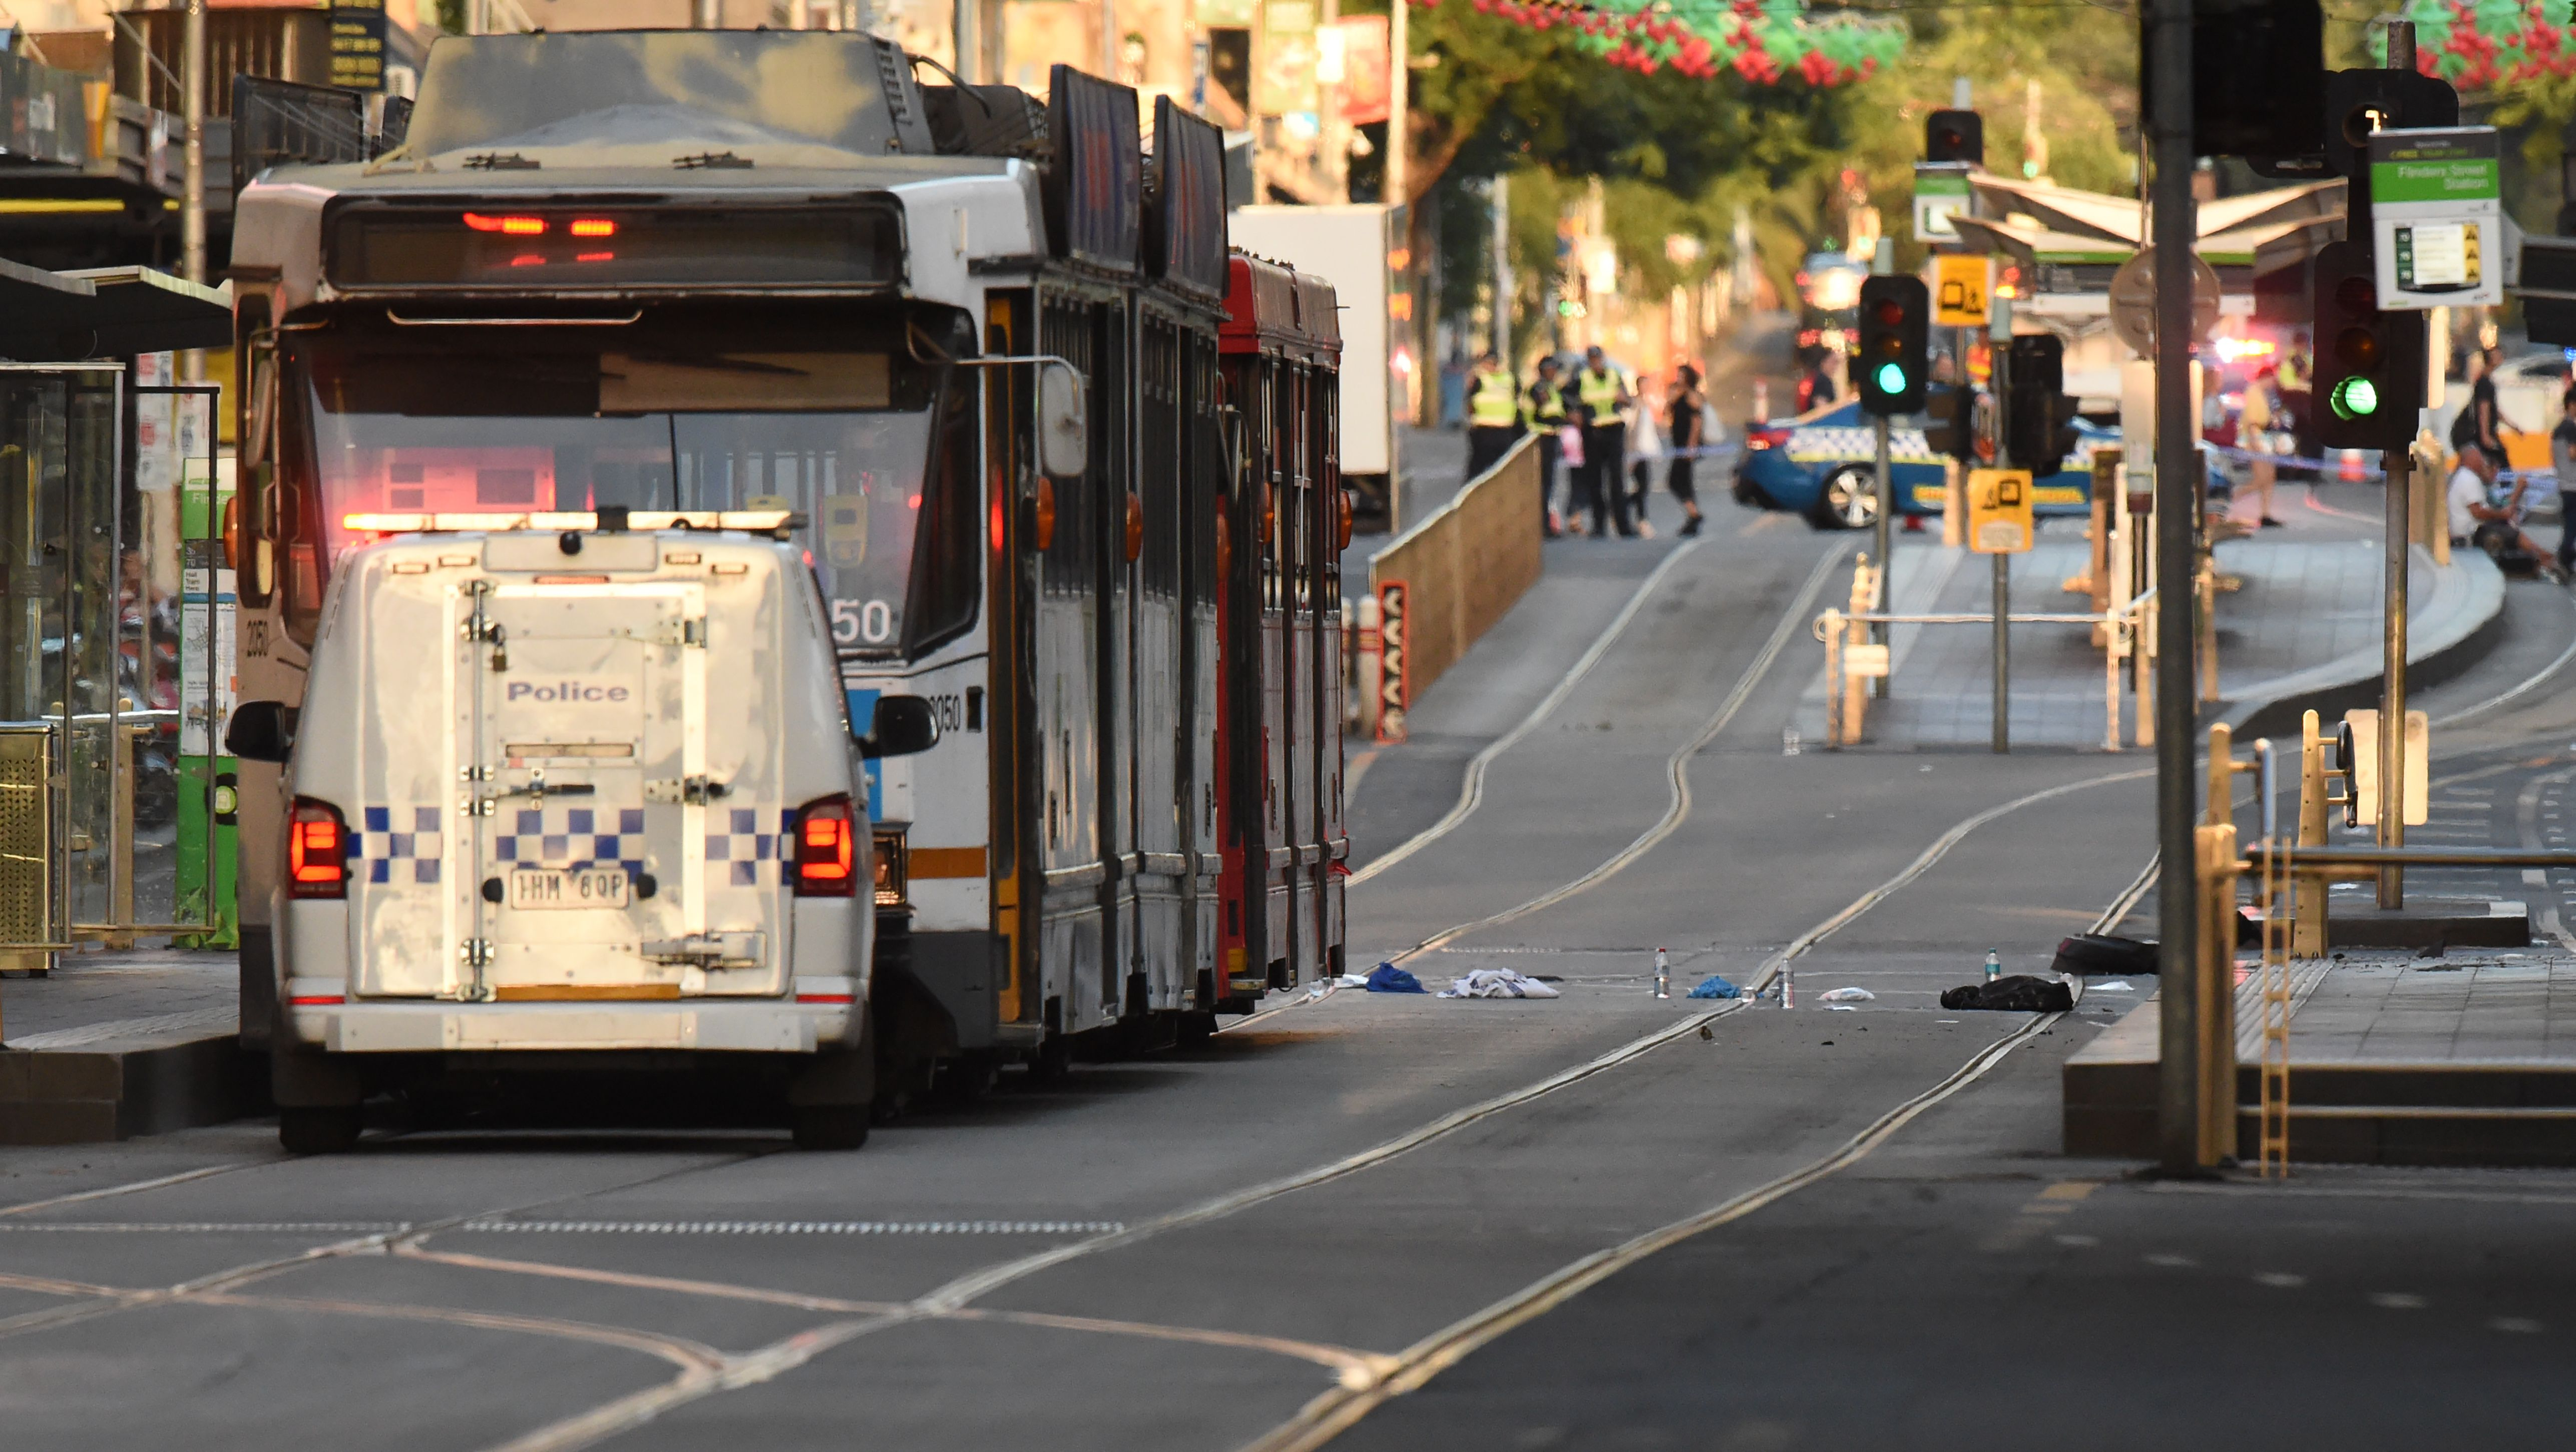 "<div class=""meta image-caption""><div class=""origin-logo origin-image none""><span>none</span></div><span class=""caption-text"">Debris sits in the middle of the road at the scene where a car ran over pedestrians in downtown Melbourne on December 21, 2017. (MAL FAIRCLOUGH/AFP/Getty Images)</span></div>"